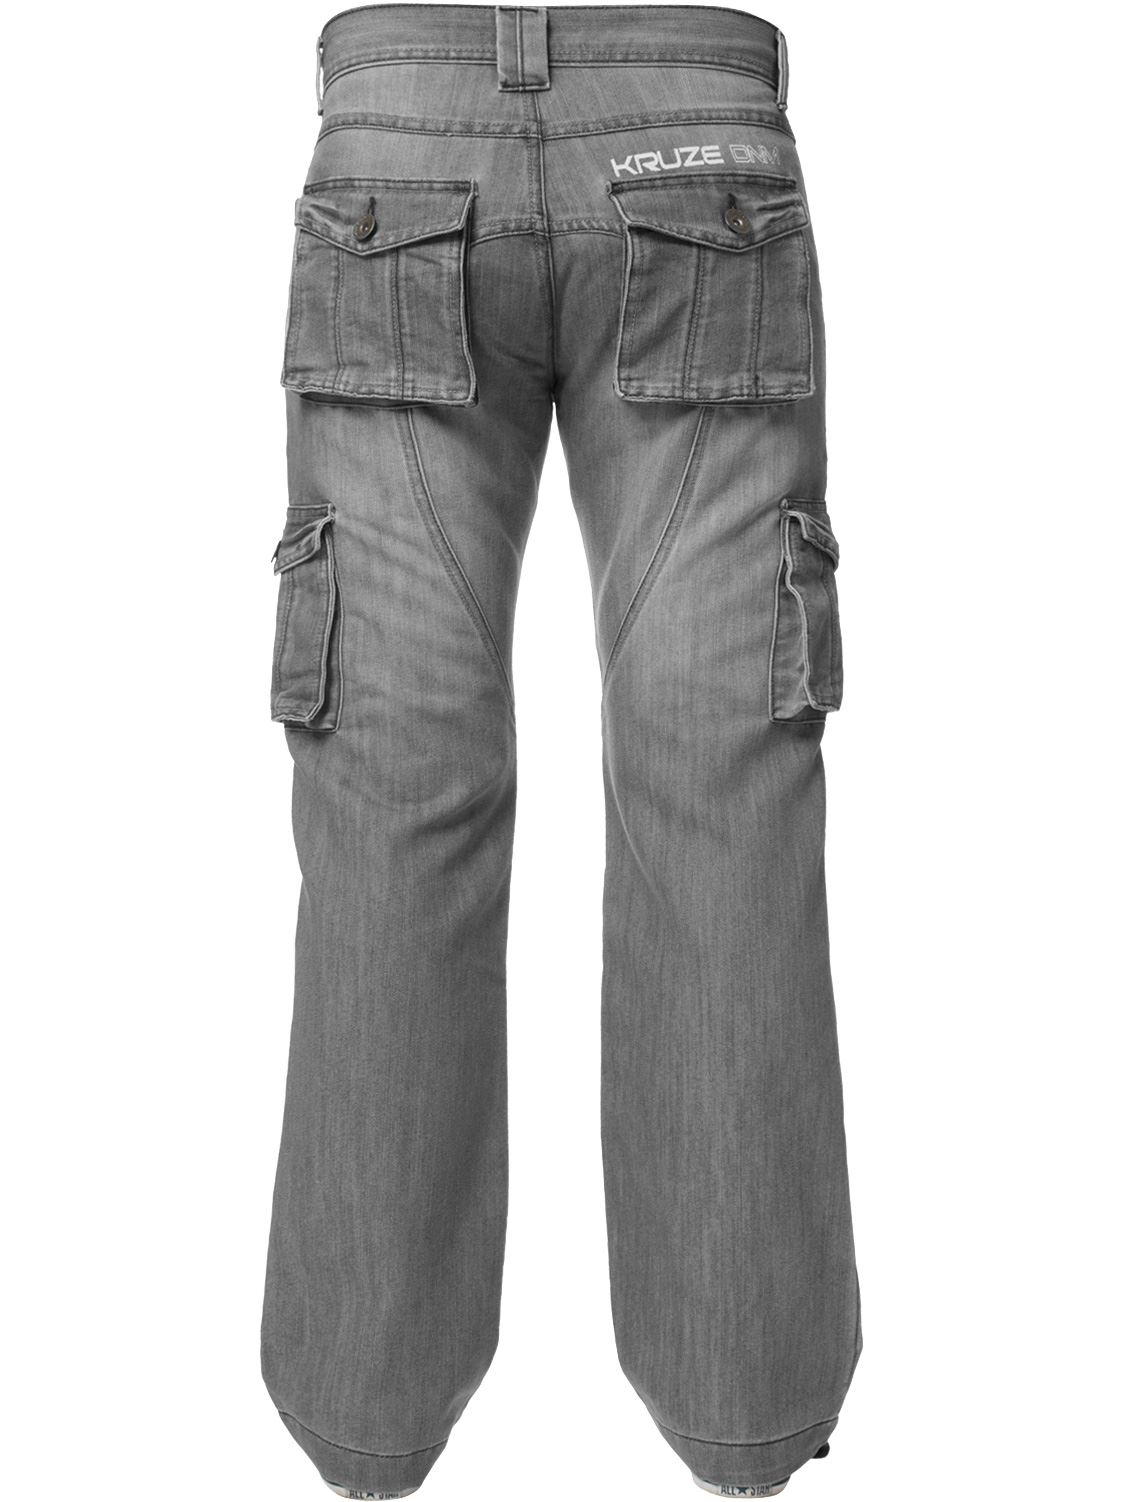 KRUZE-Mens-Combat-Jeans-Casual-Cargo-Work-Pants-Denim-Trousers-All-Waist-Sizes thumbnail 28